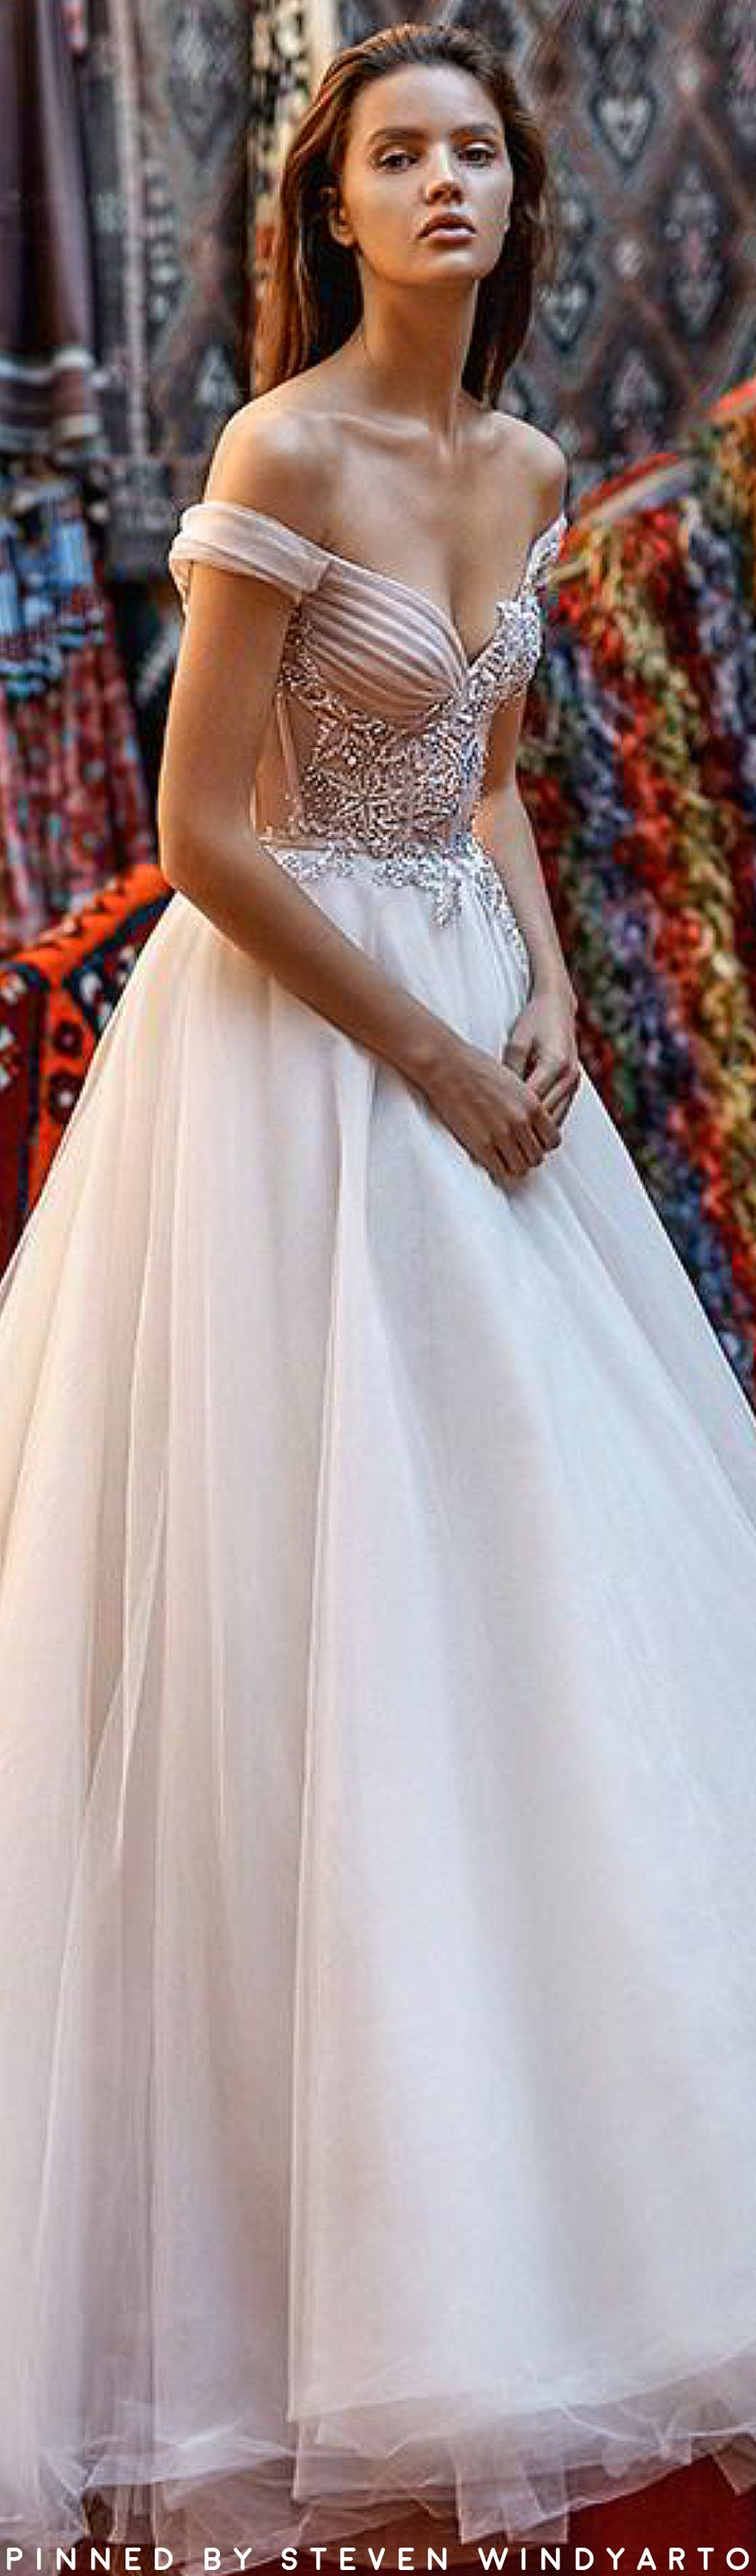 Liz martinez wedding dress  First Look Liz Martinez  ucCappadociaud Collection  Womenus